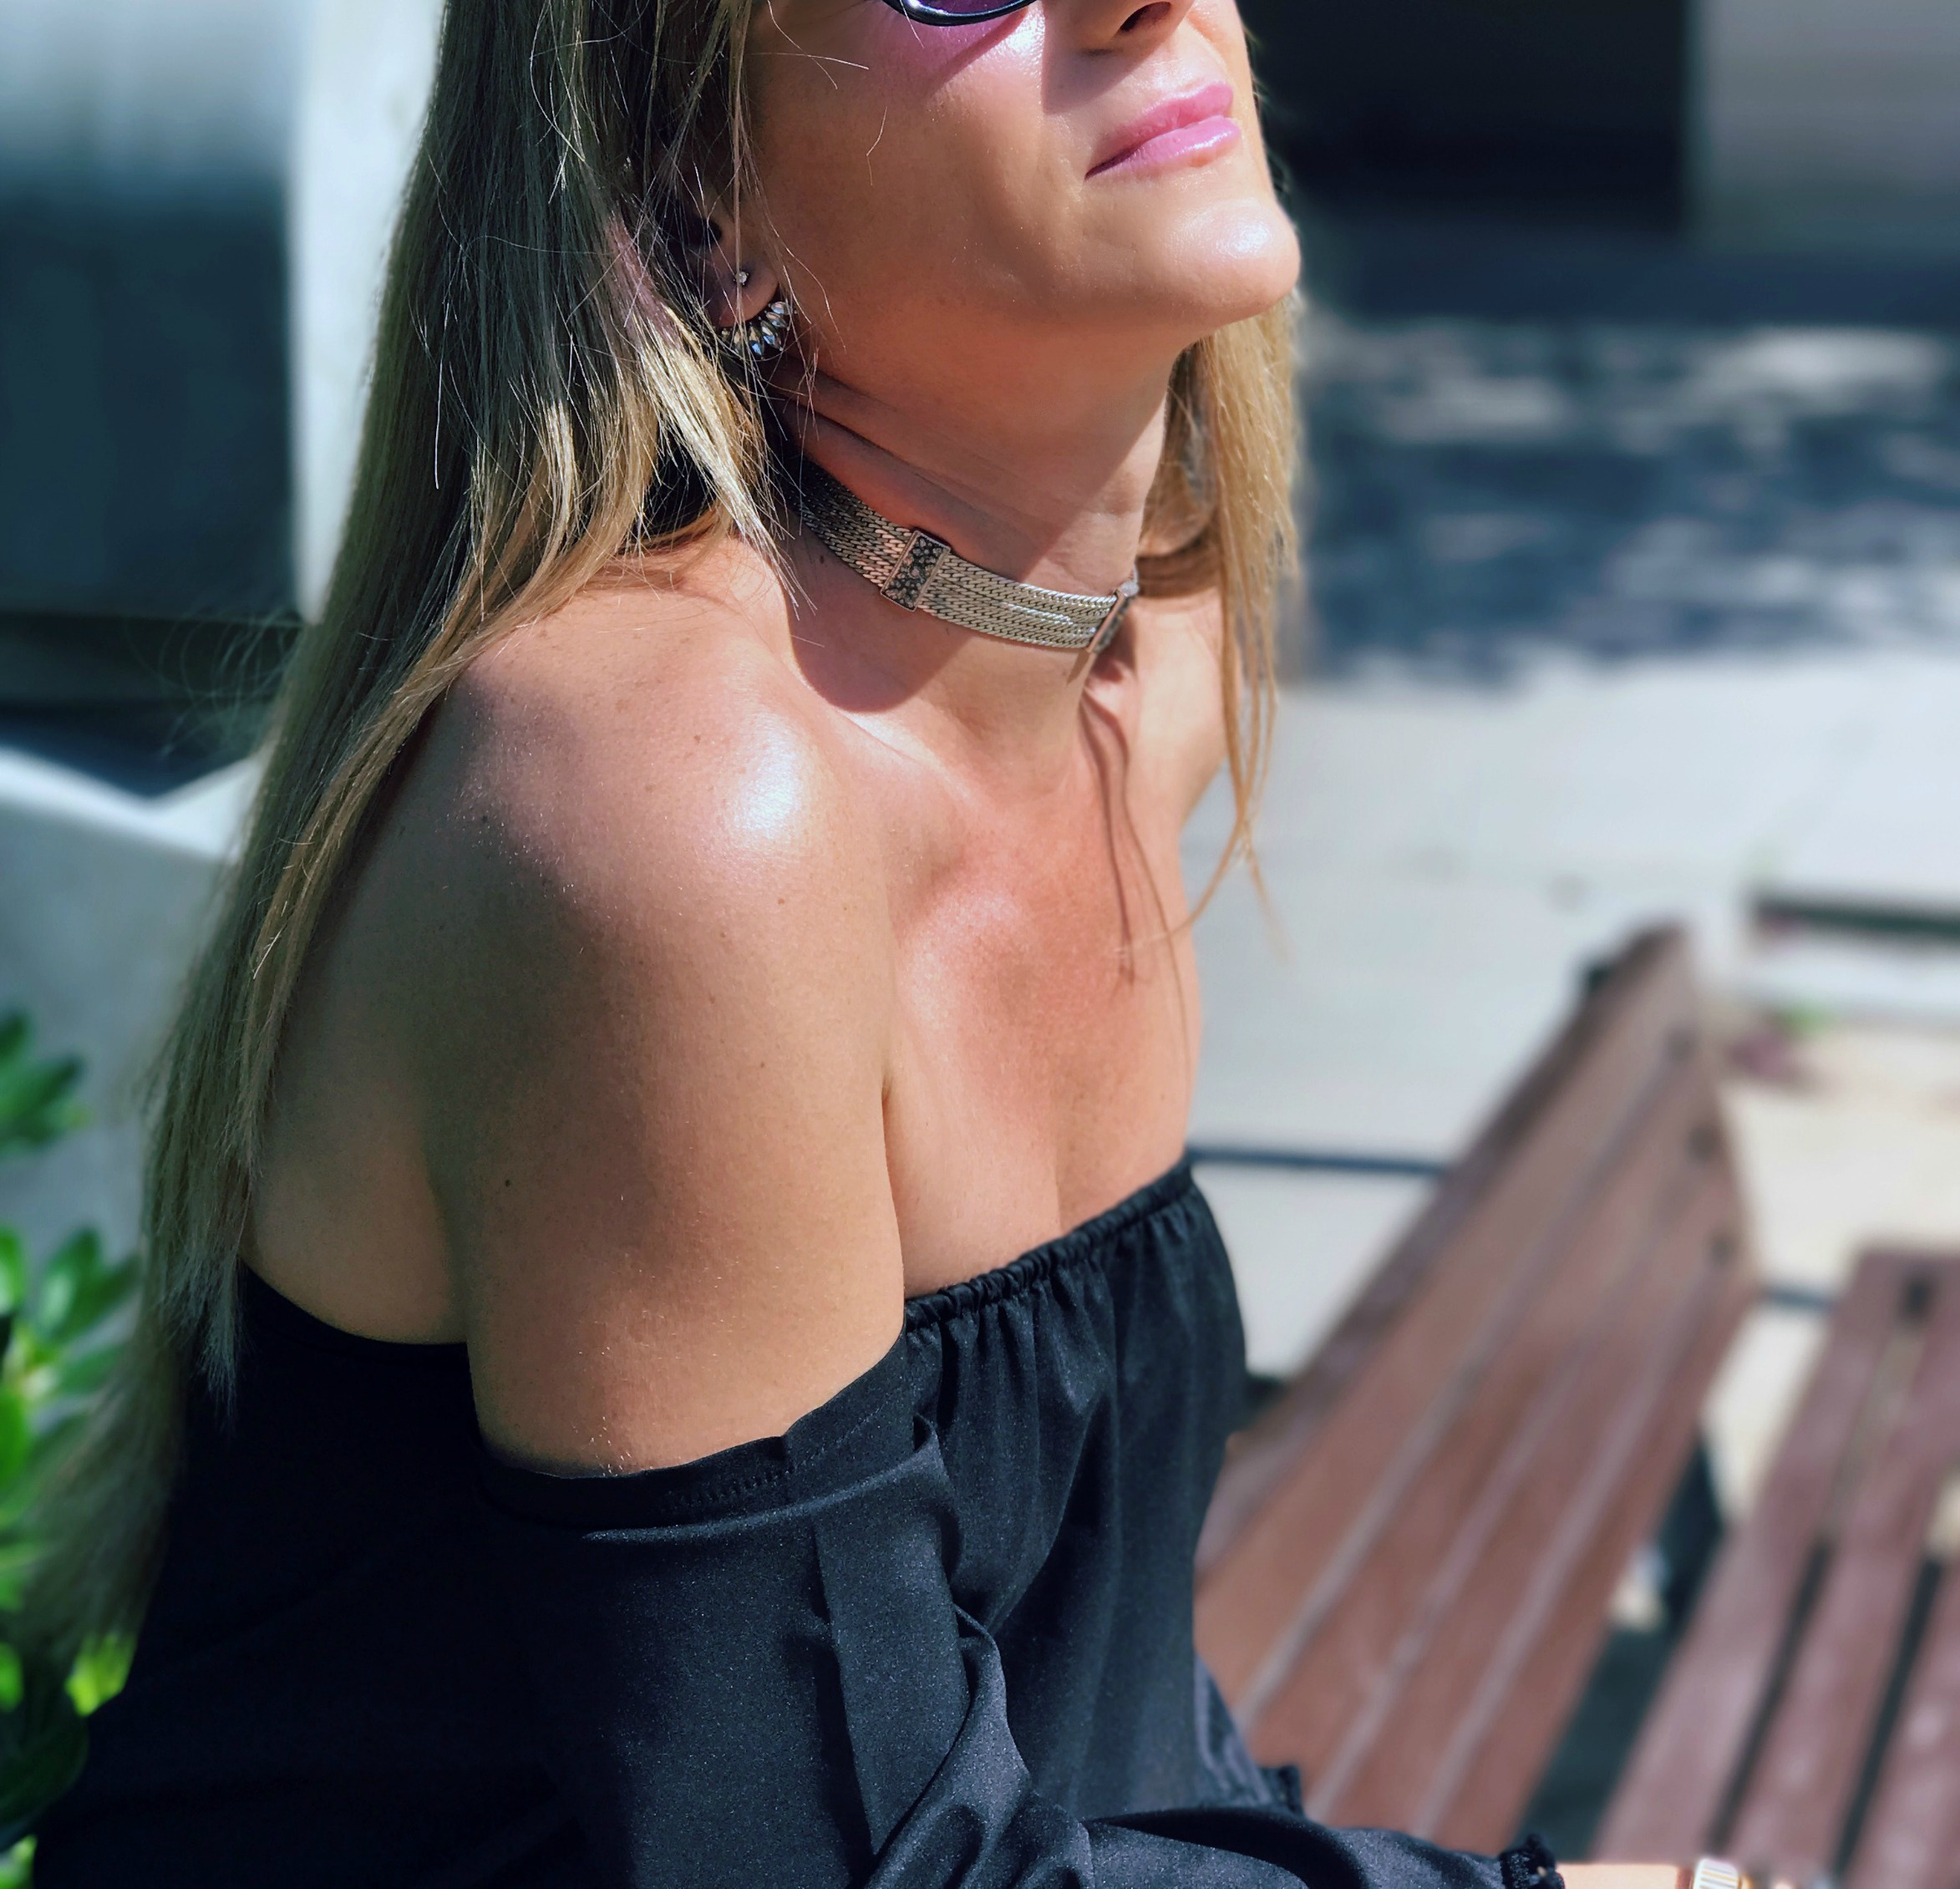 portadita choker off shoulder